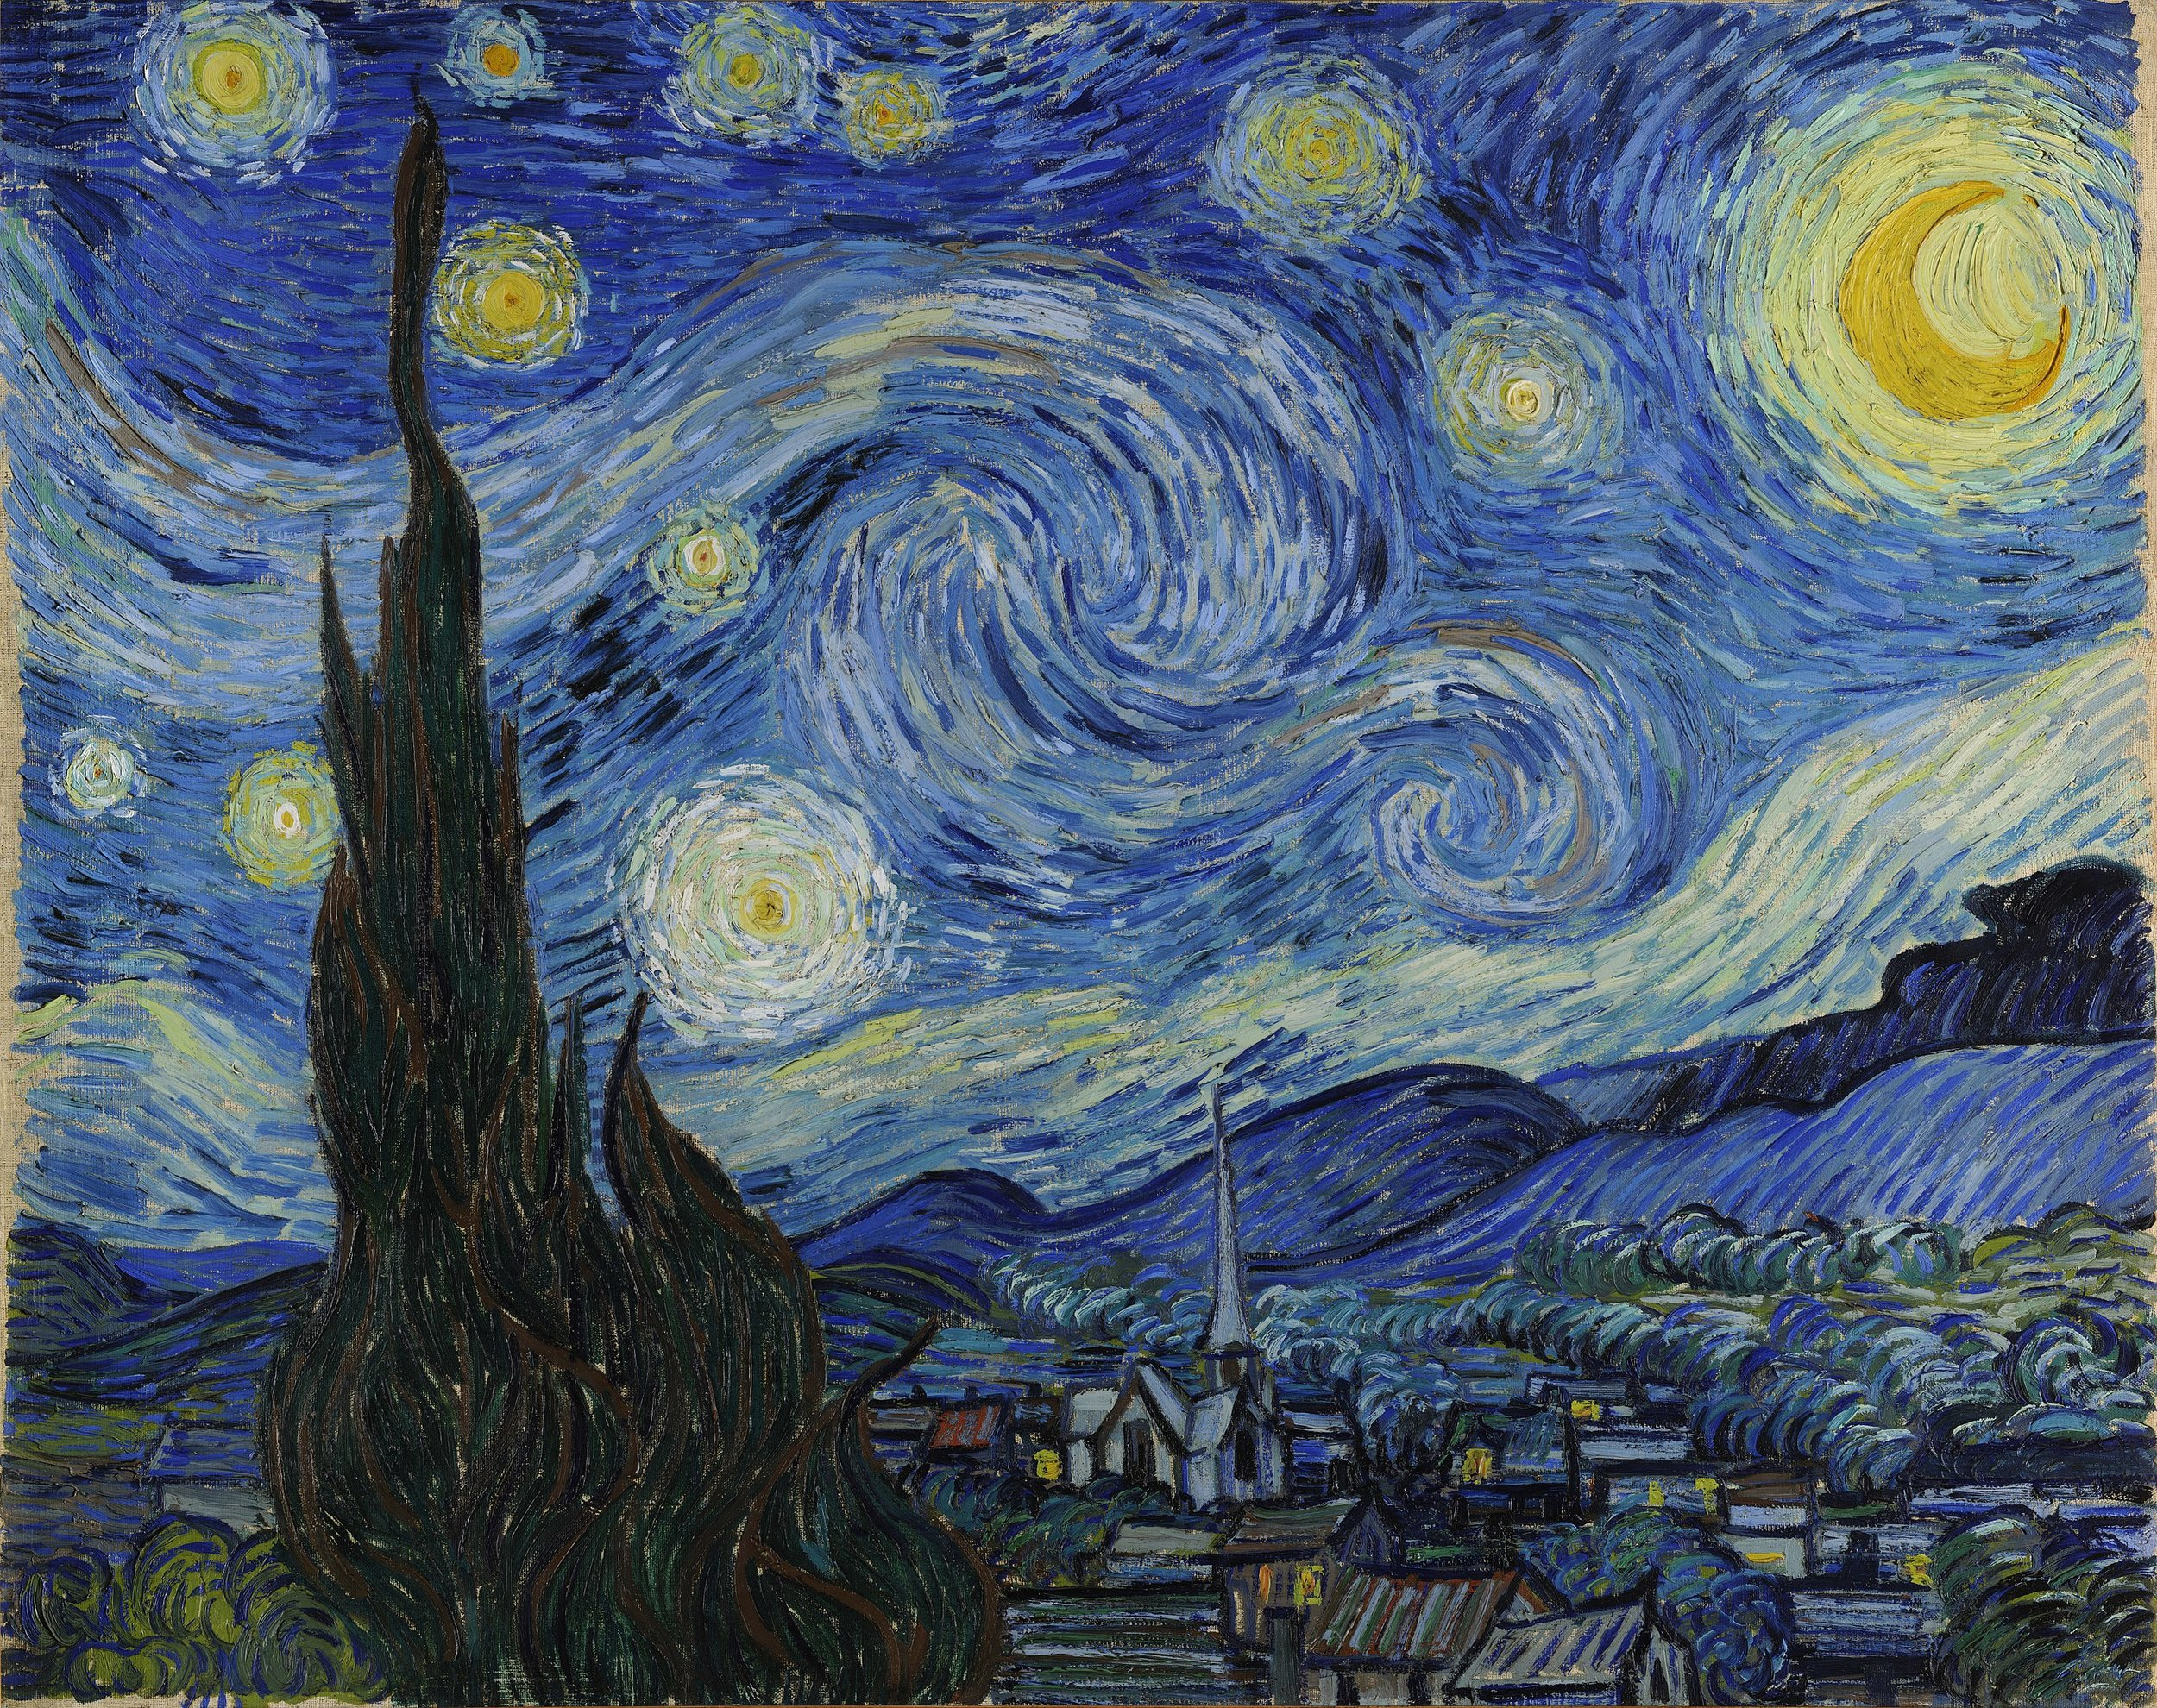 """Vincent Van Gogh's  Starry Night,  oil on canvas. Old. Old enough to make your grandma feel young. Worth more than your neighborhood, probably. """"It's nice, but I don't see us living there."""""""